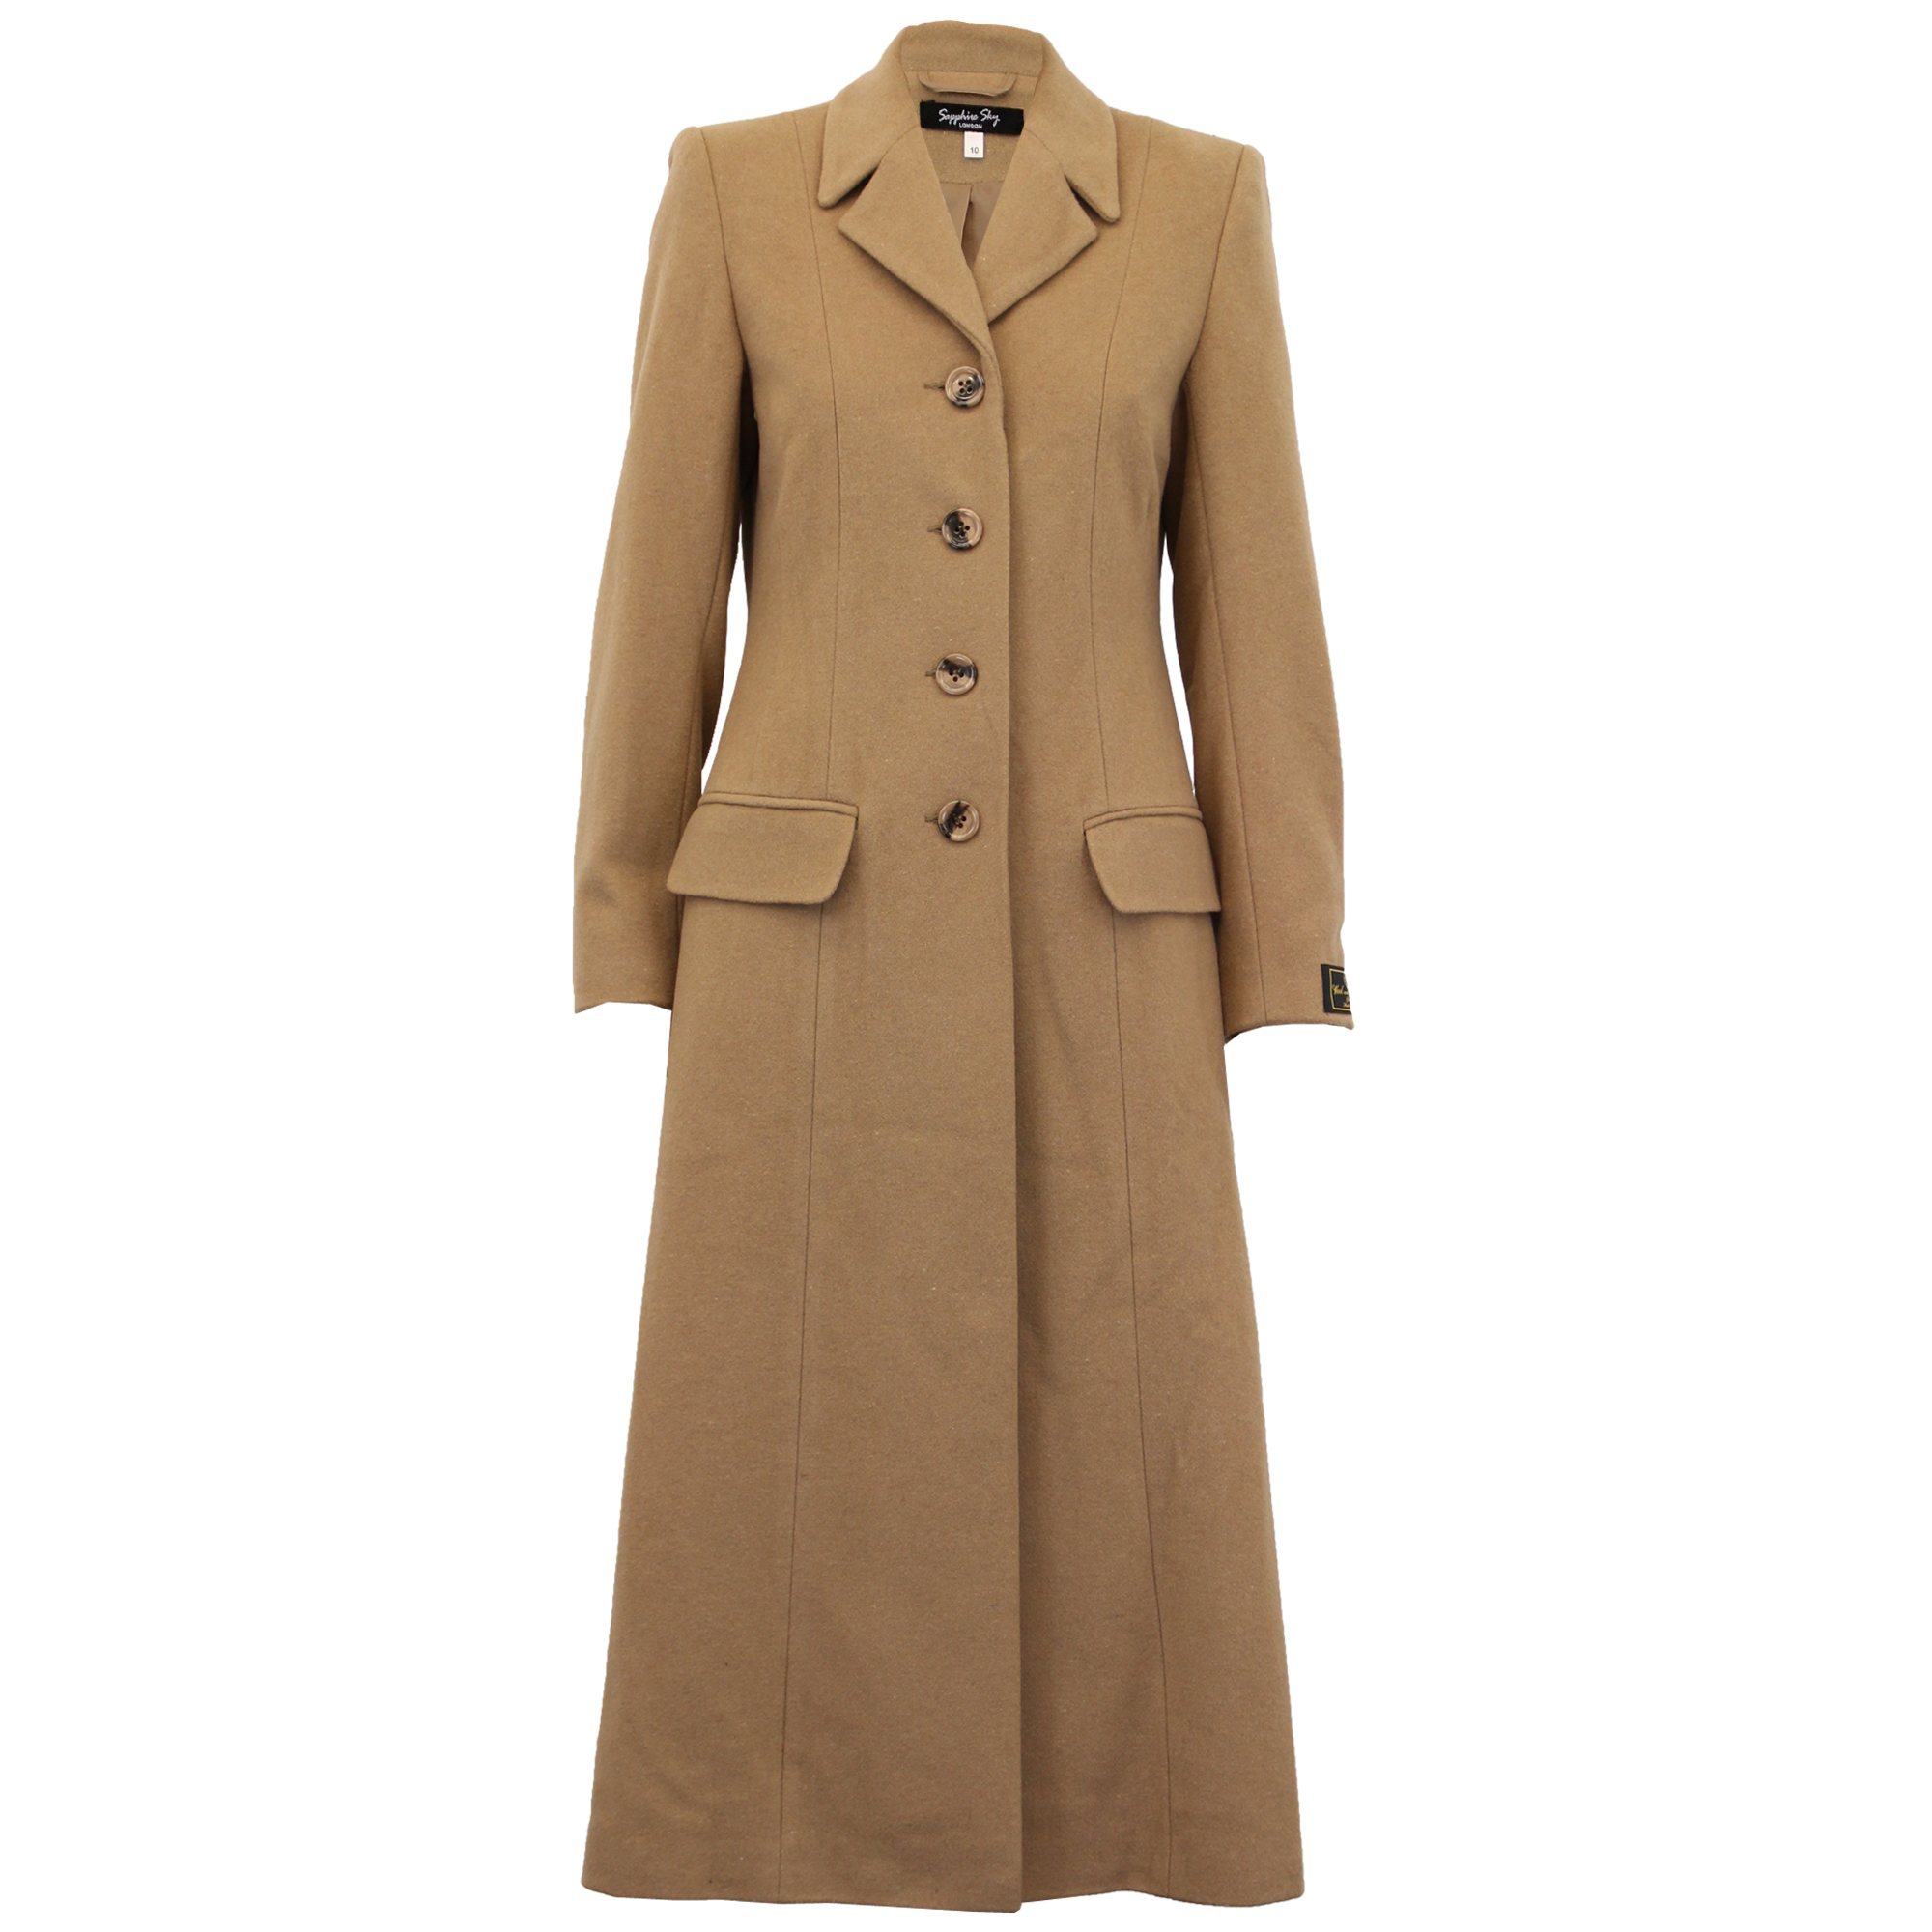 Find a great selection of coats, jackets and blazers for women at coolmfilehj.cf Shop winter coats, peacoats, raincoats, as well as trenches & blazers from brands like Topshop, Canada Goose, The North Face & more. Free shipping & returns.